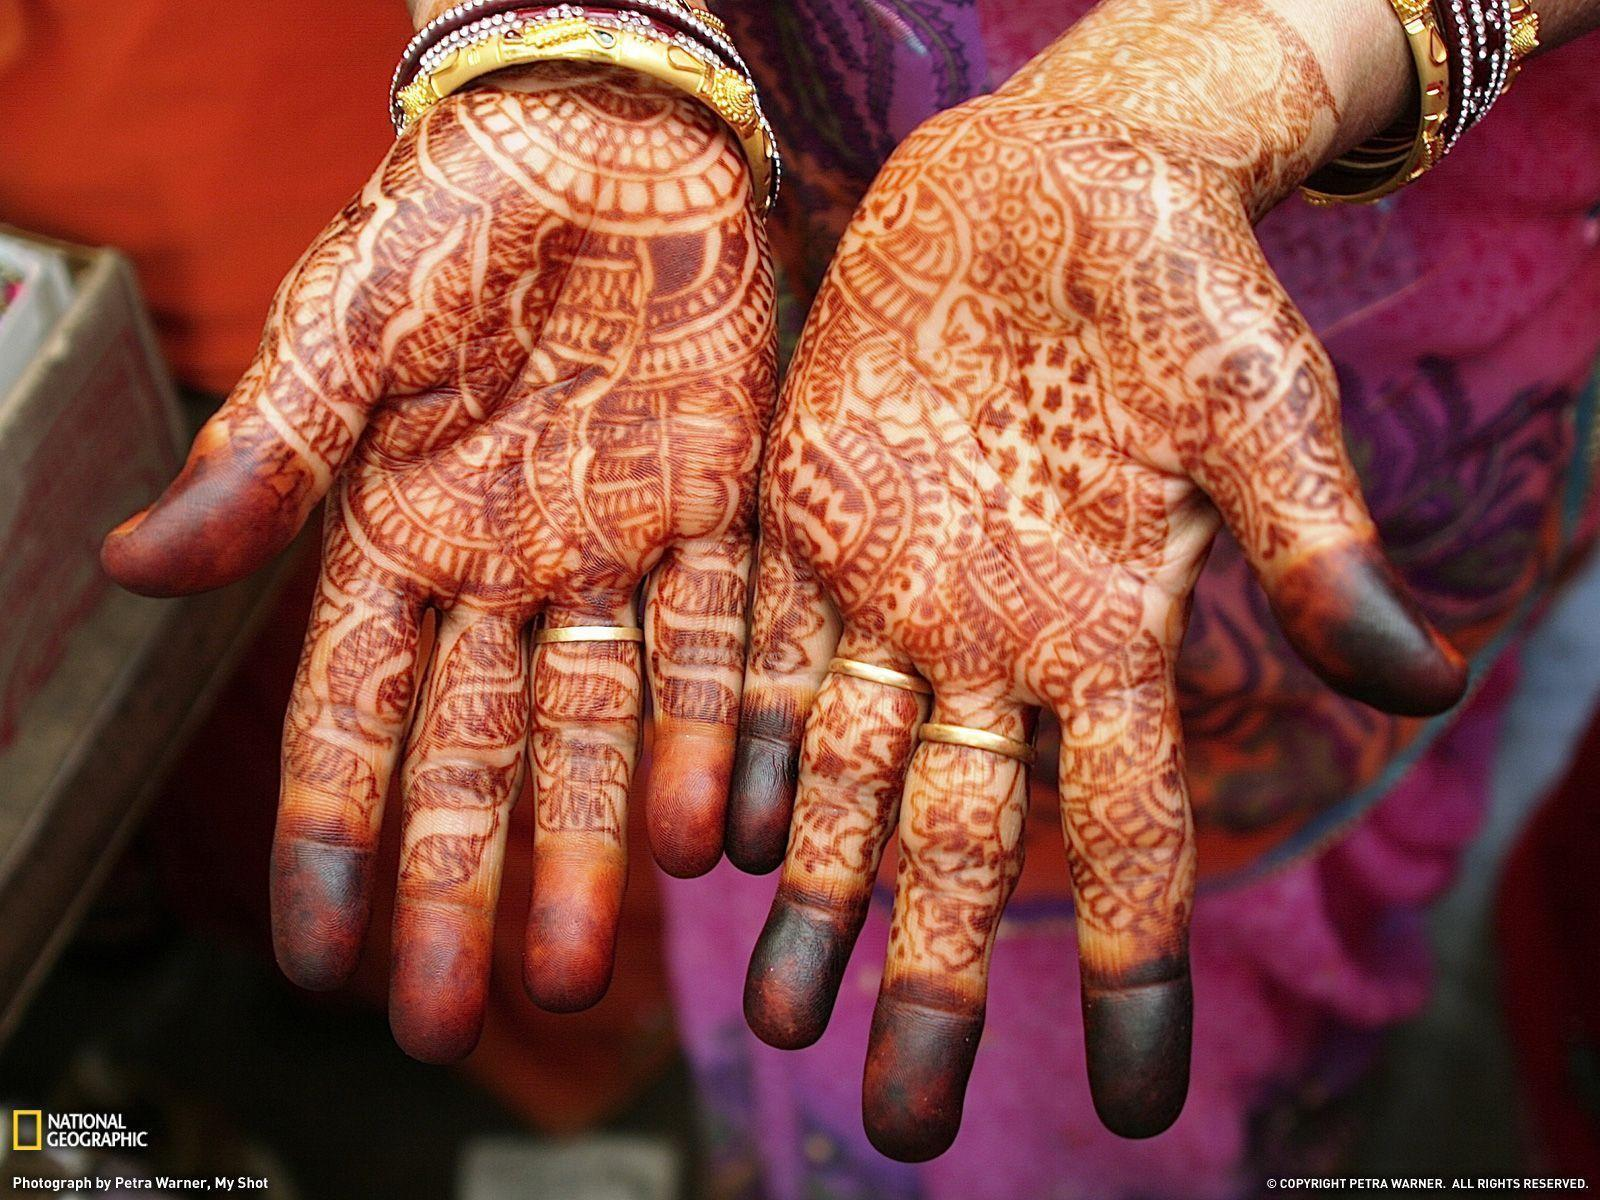 Henna Hands Photo, India Wallpaper – National Geographic Photo of ...